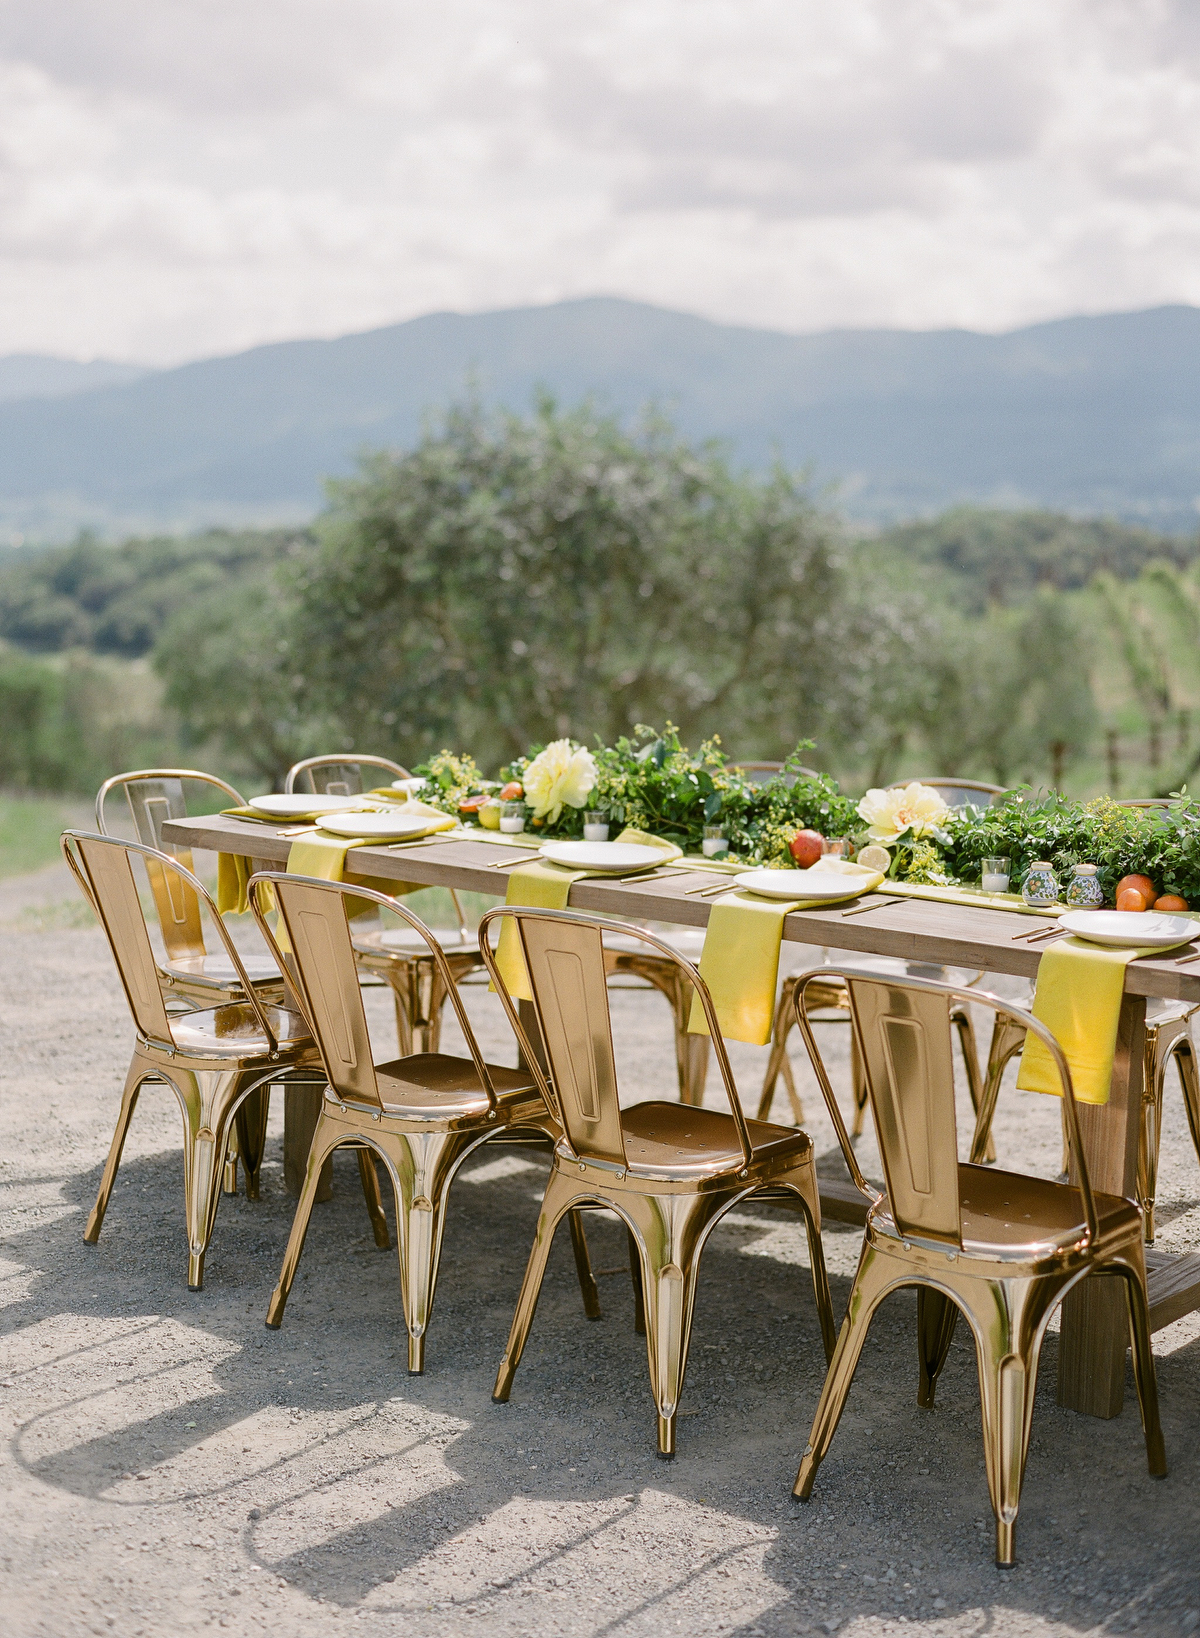 nadine dan rehearsal dinner table overlooking mountains